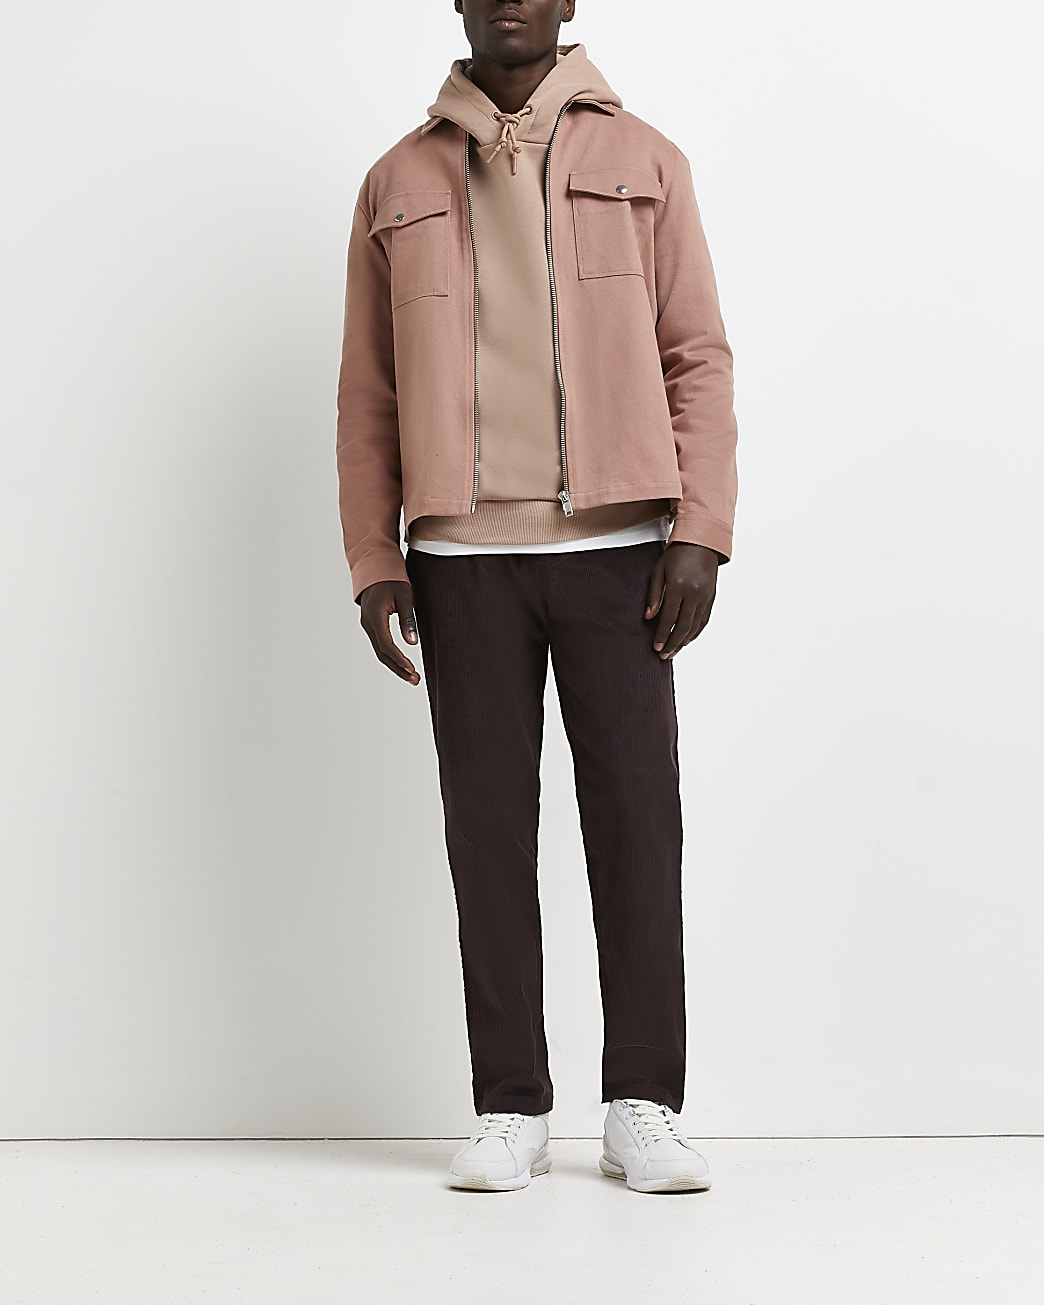 Brown relaxed fit cord trousers